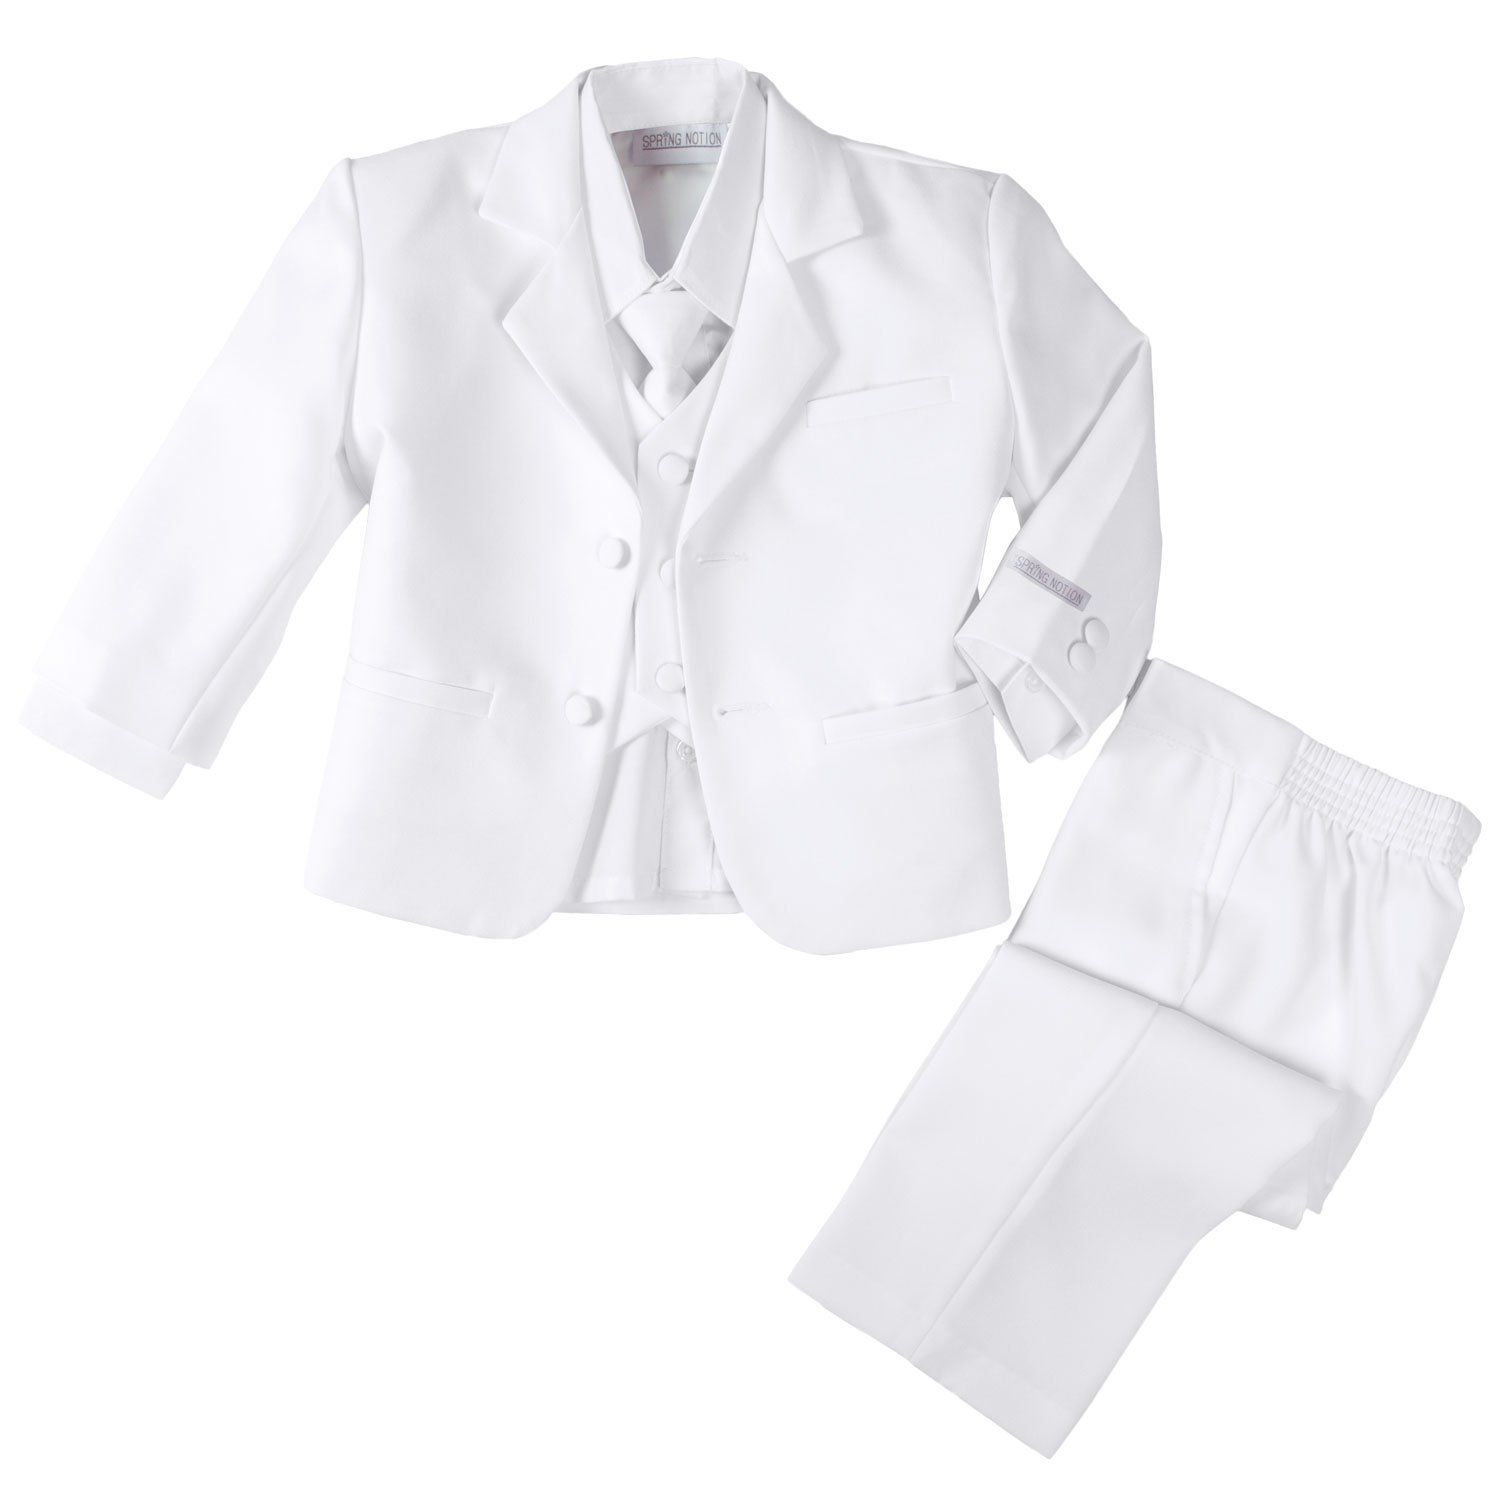 Simple White Christening Suit from Spring Notion $30 00 $45 00